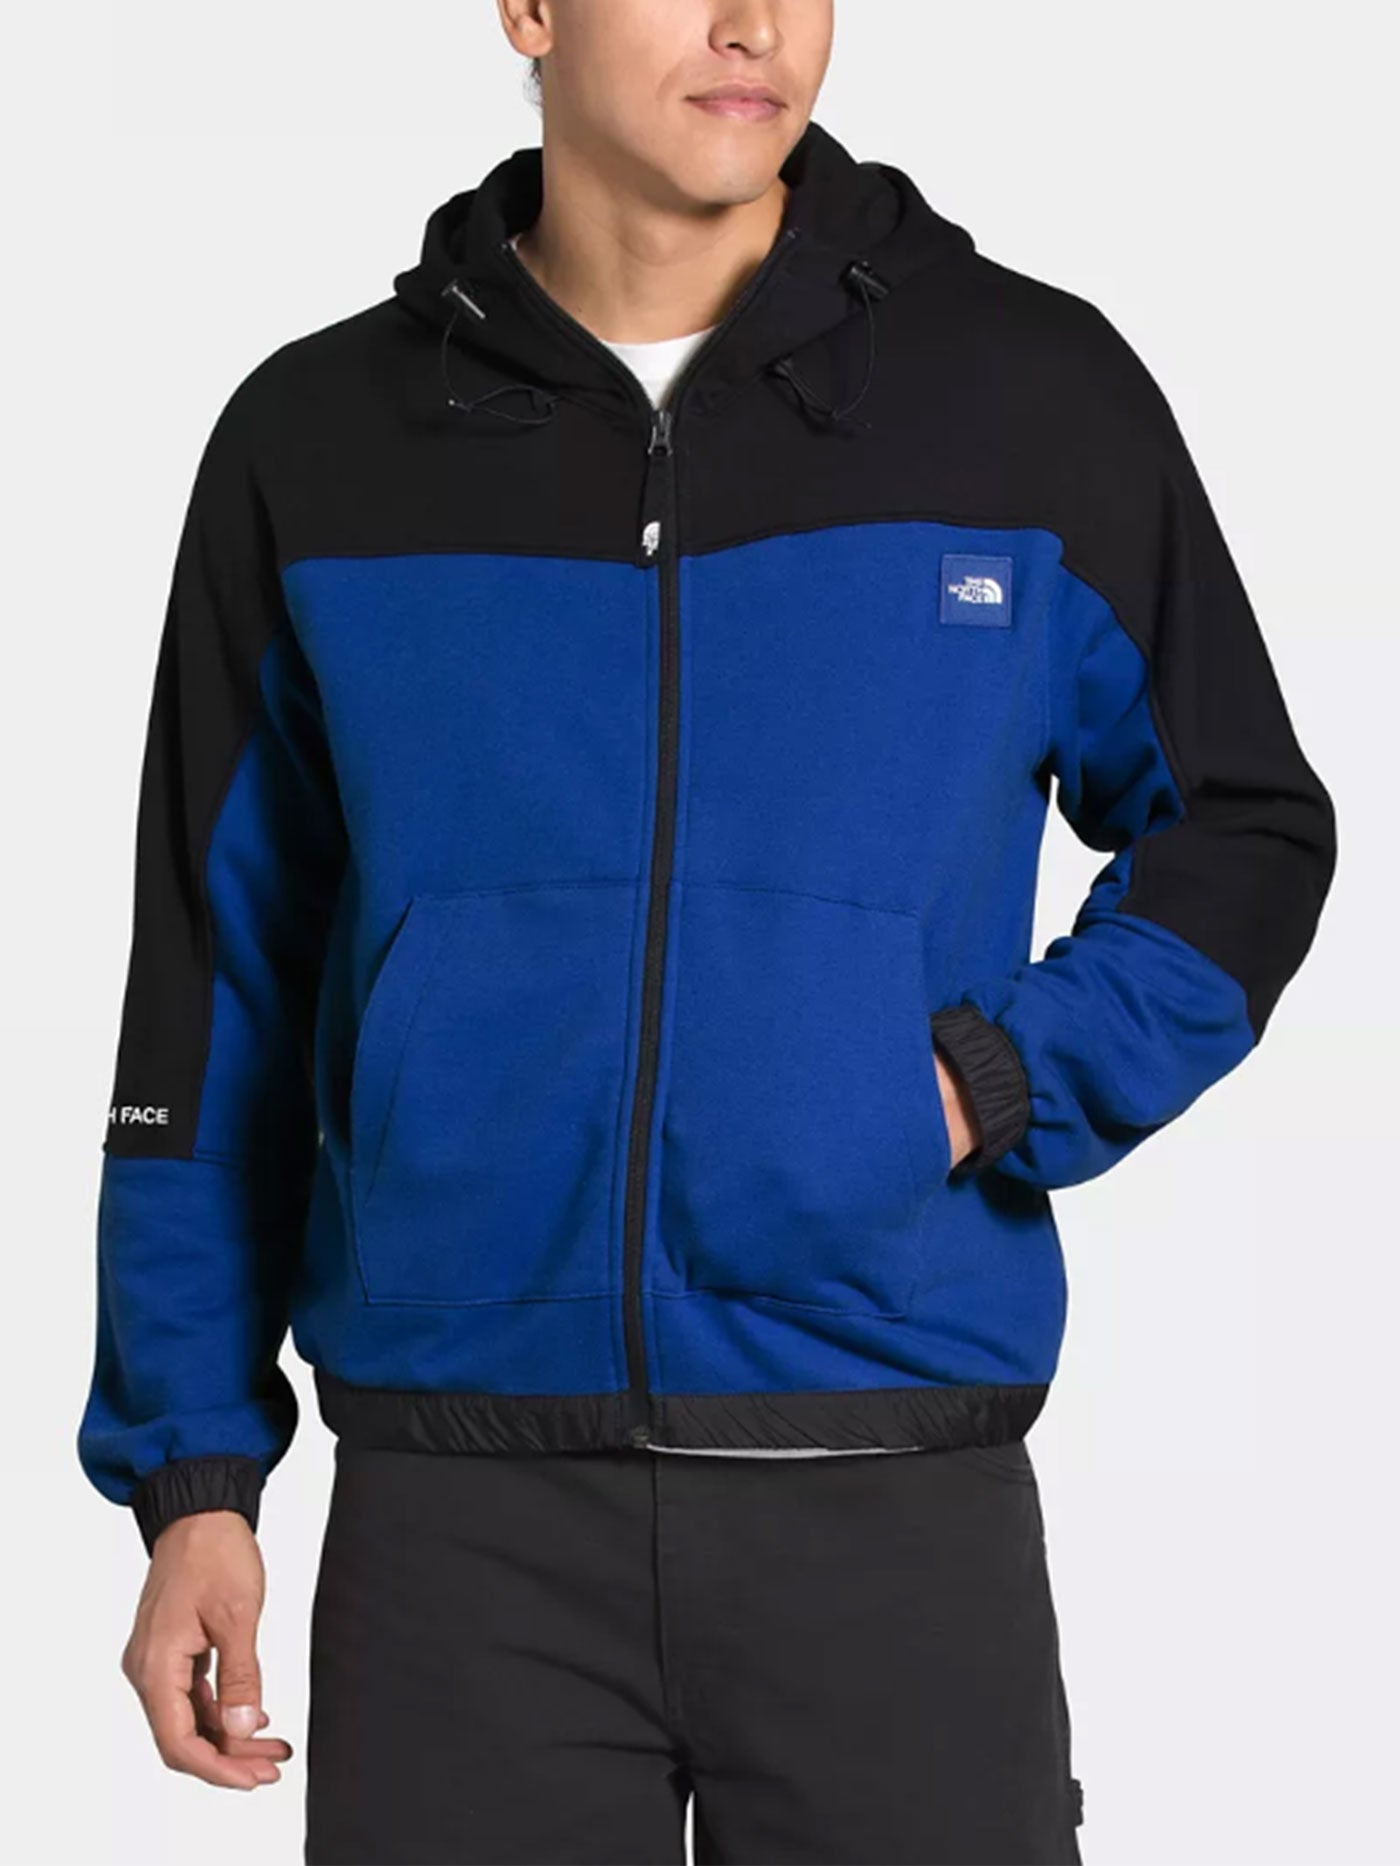 TNF BLUE/TNF BLACK (EF1)